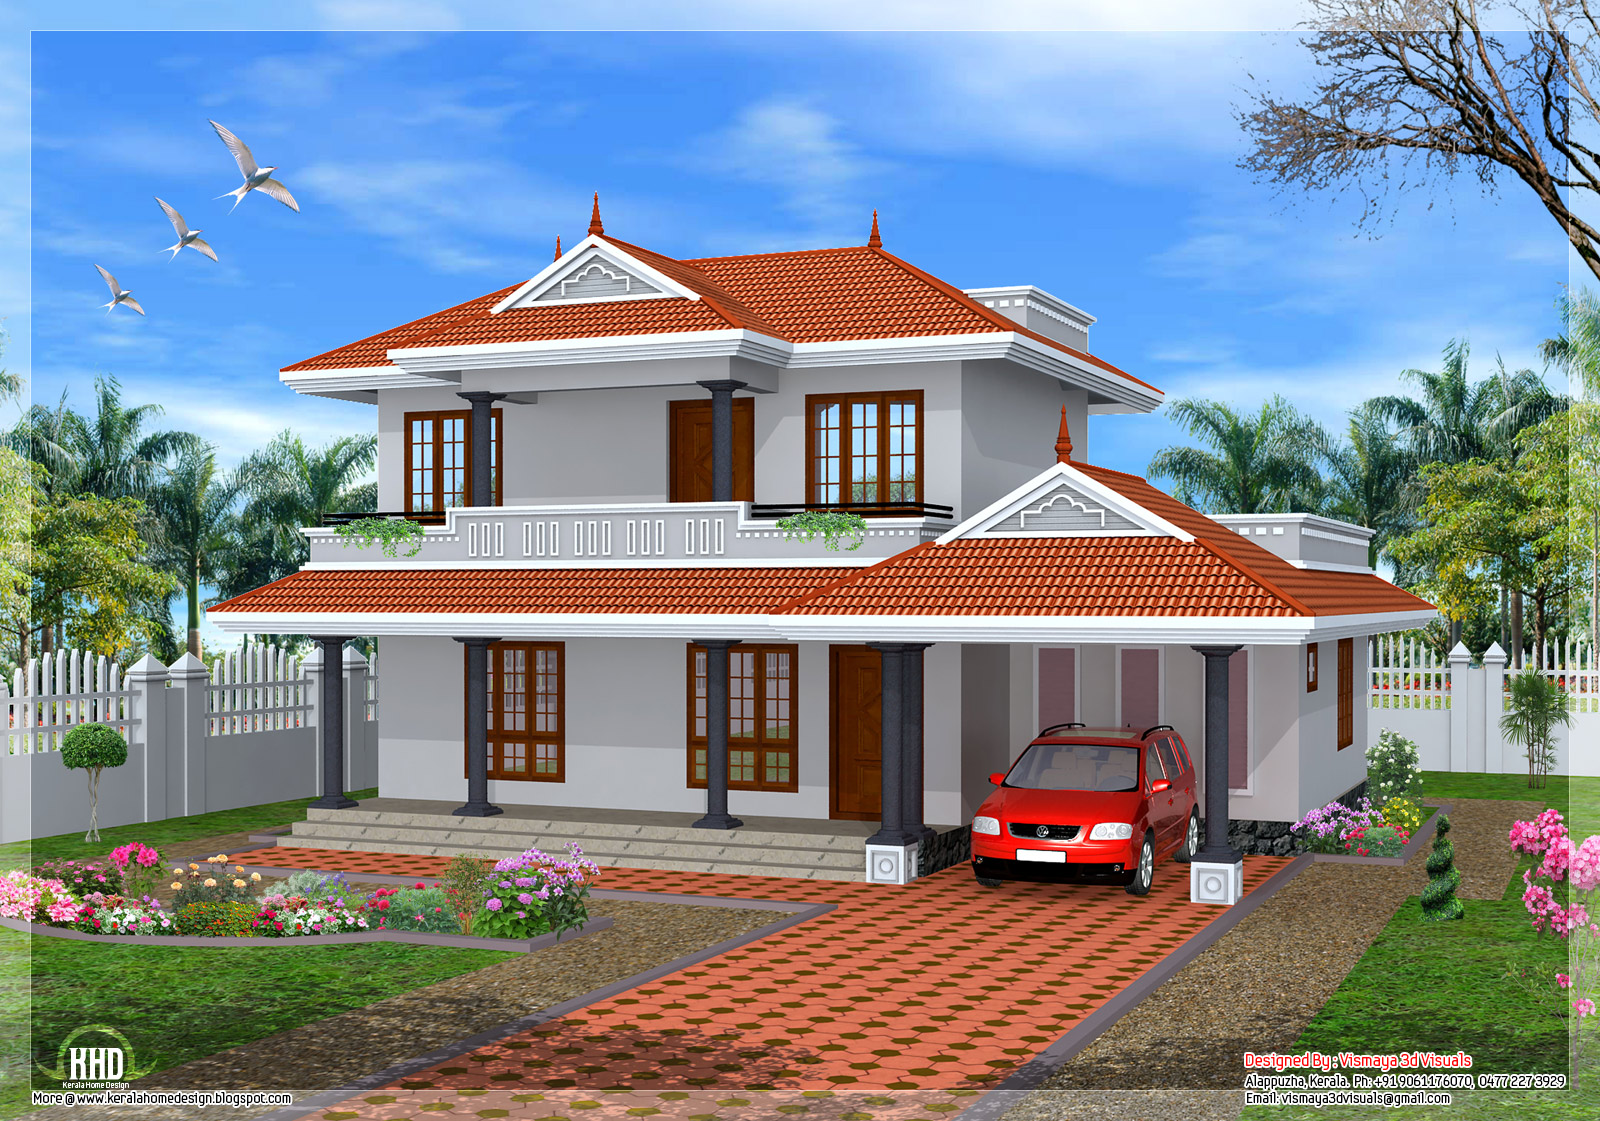 2001 sq.feet 3 bedroom sloping roof home design